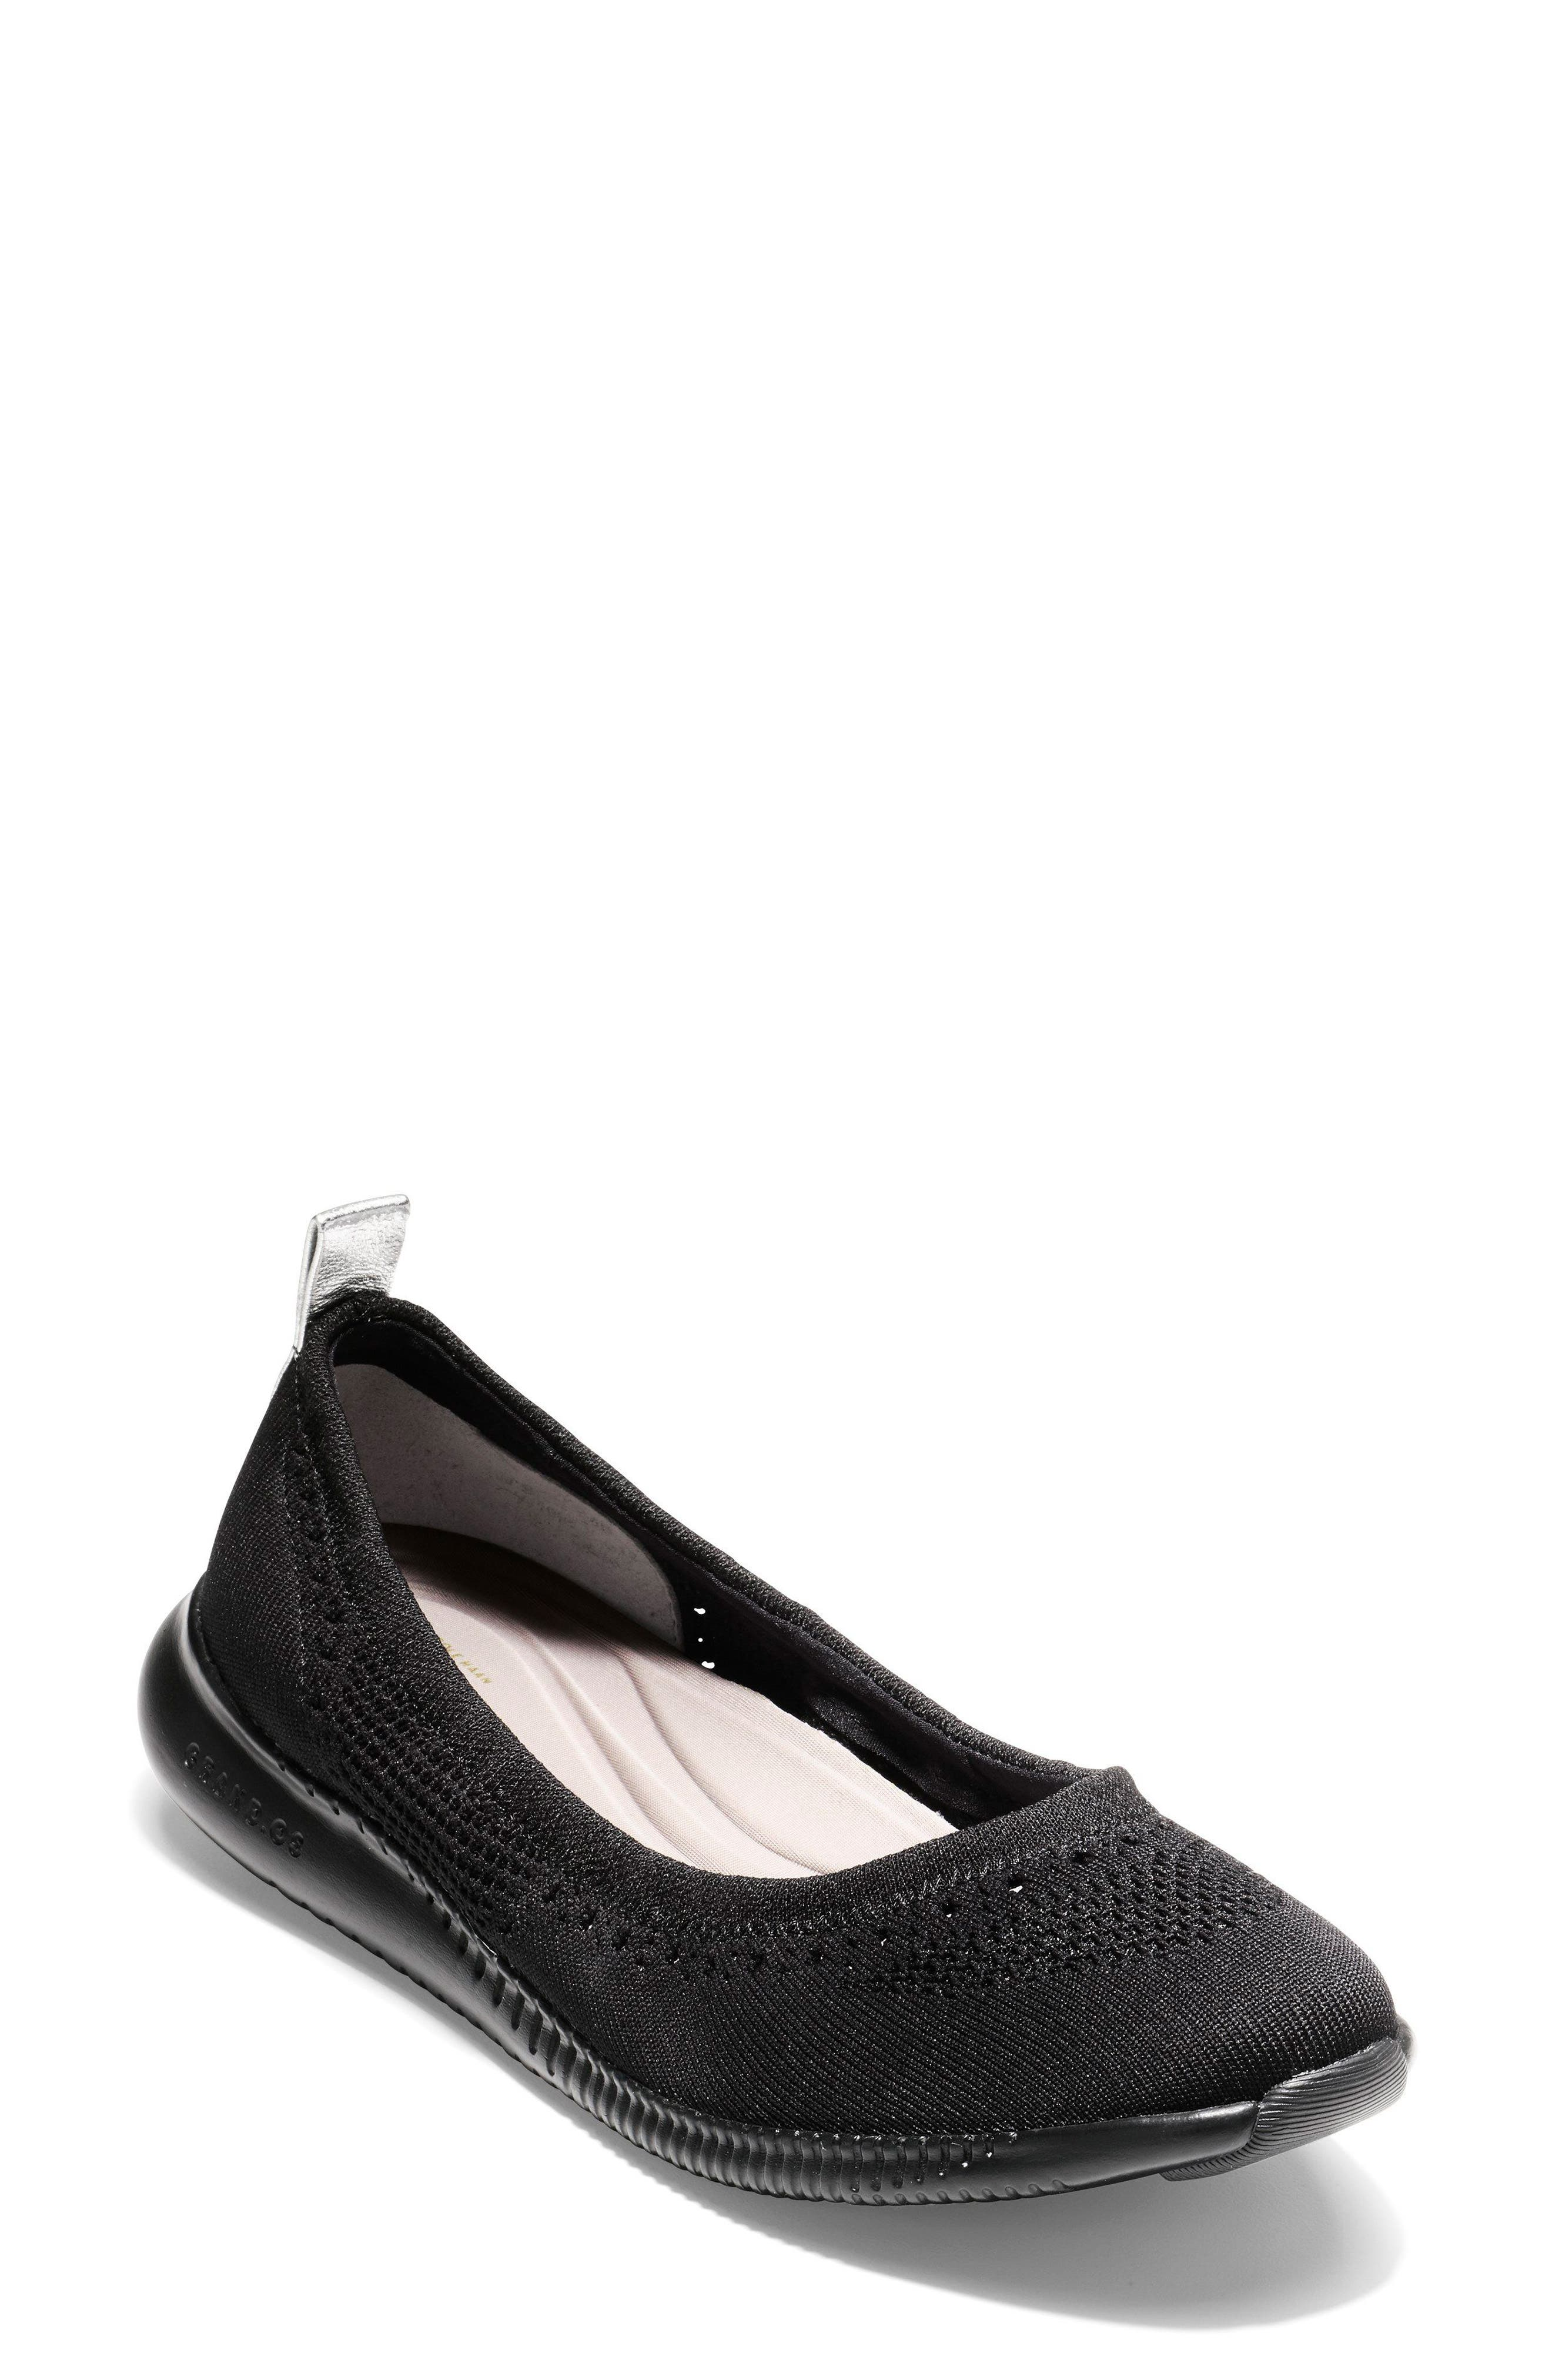 COLE HAAN, 2.ZERØGRAND Stitchlite Ballet Flat, Main thumbnail 1, color, BLACK FABRIC